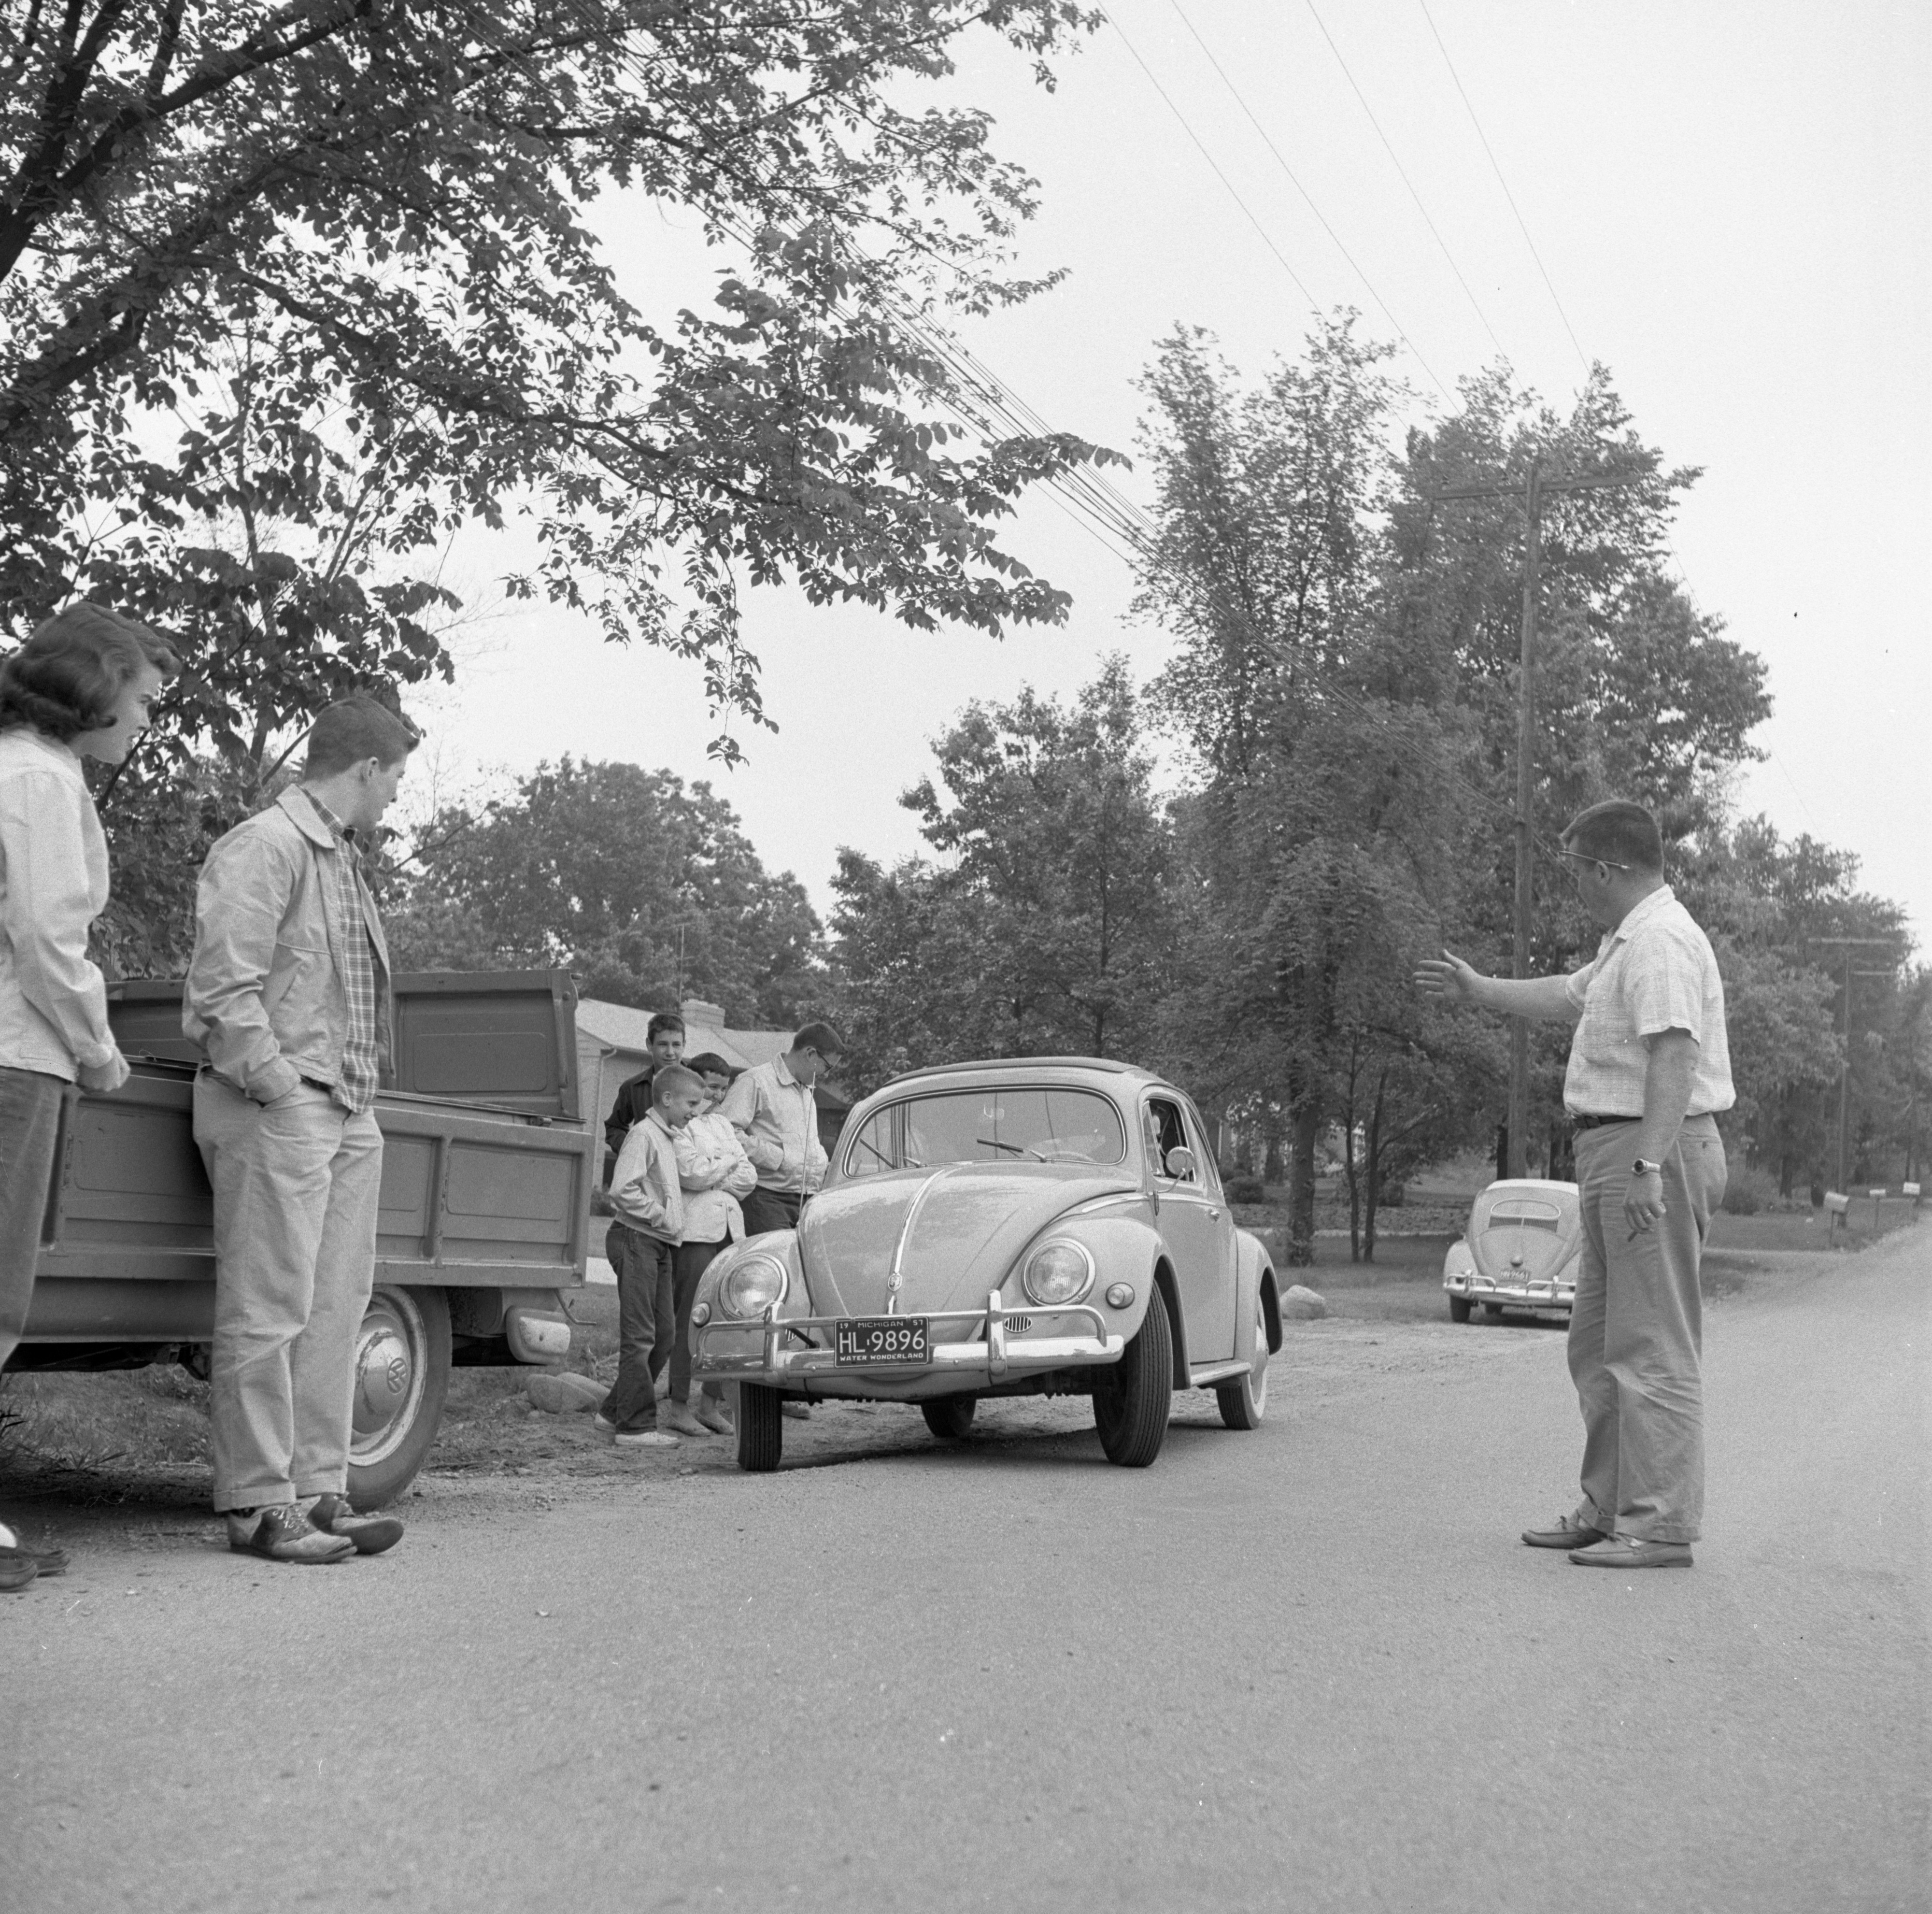 A Volkswagen Clears The Arlington/Devonshire Check Point In The Foreign Car Road Rally, June 1957 image